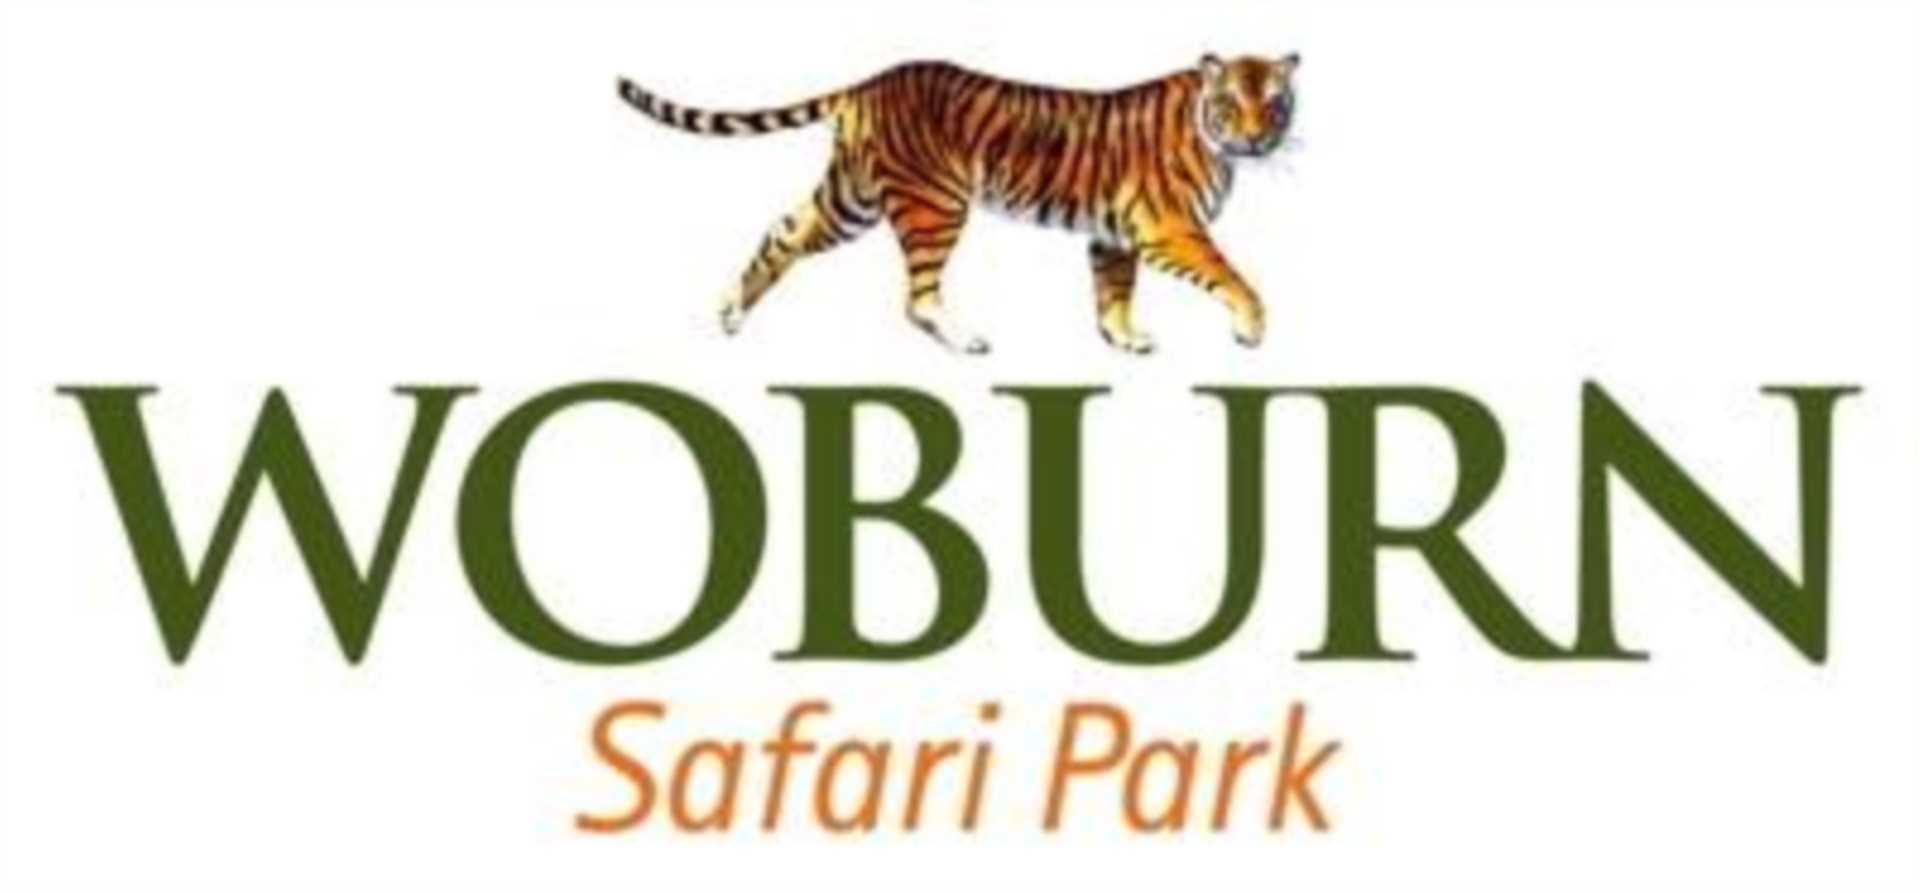 *** WOBURN SAFARI PARK FAMILY DAY OUT GIVEAWAY***